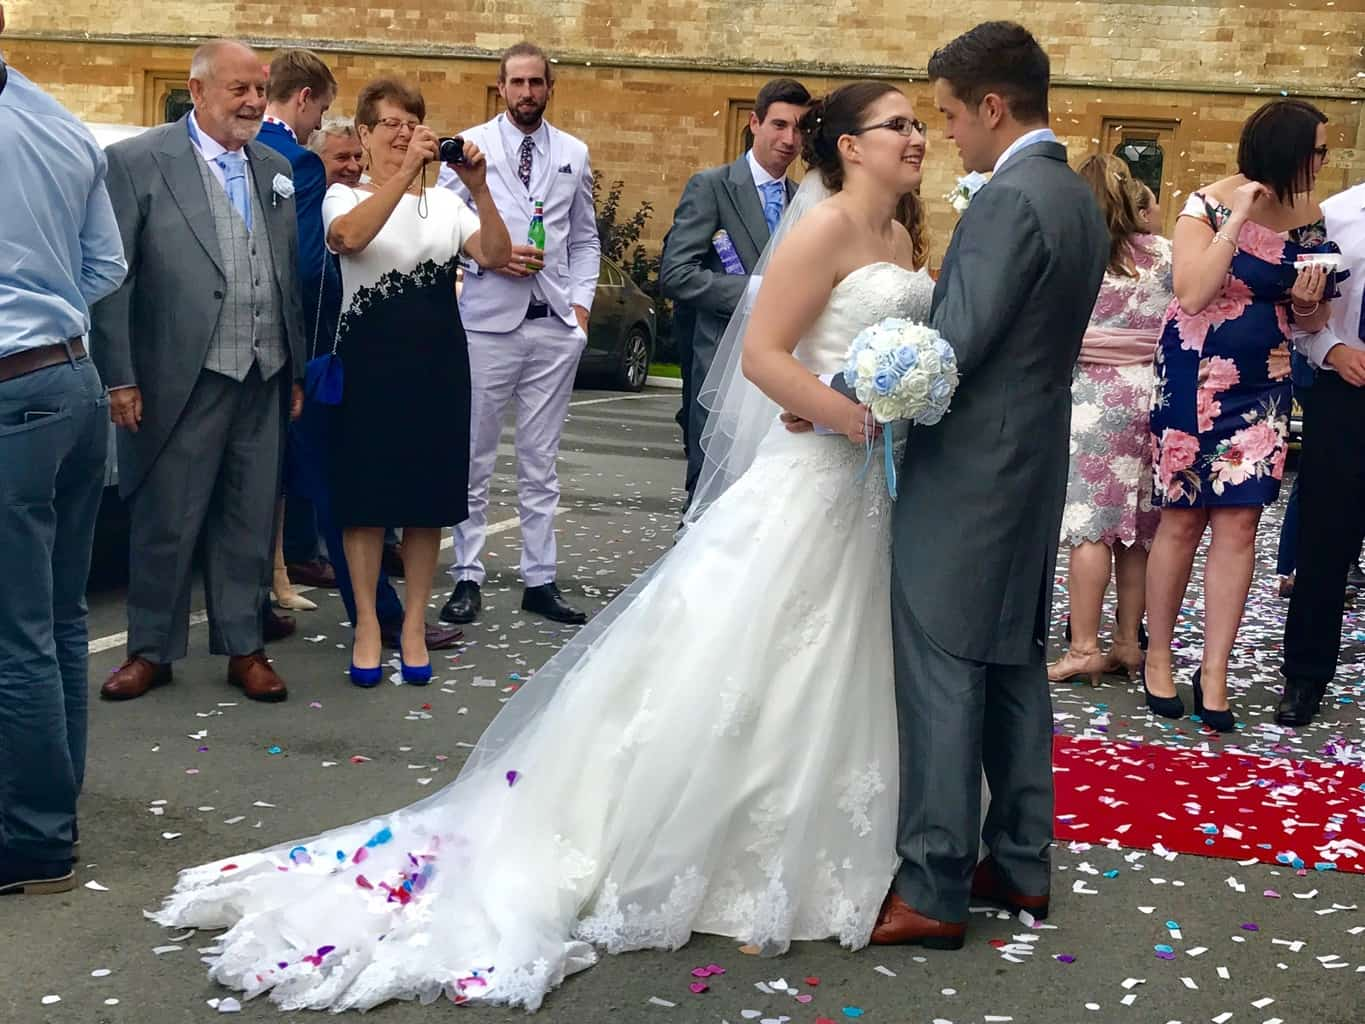 An Overnight Stay And Wedding At Warwickshire Walton Hall And